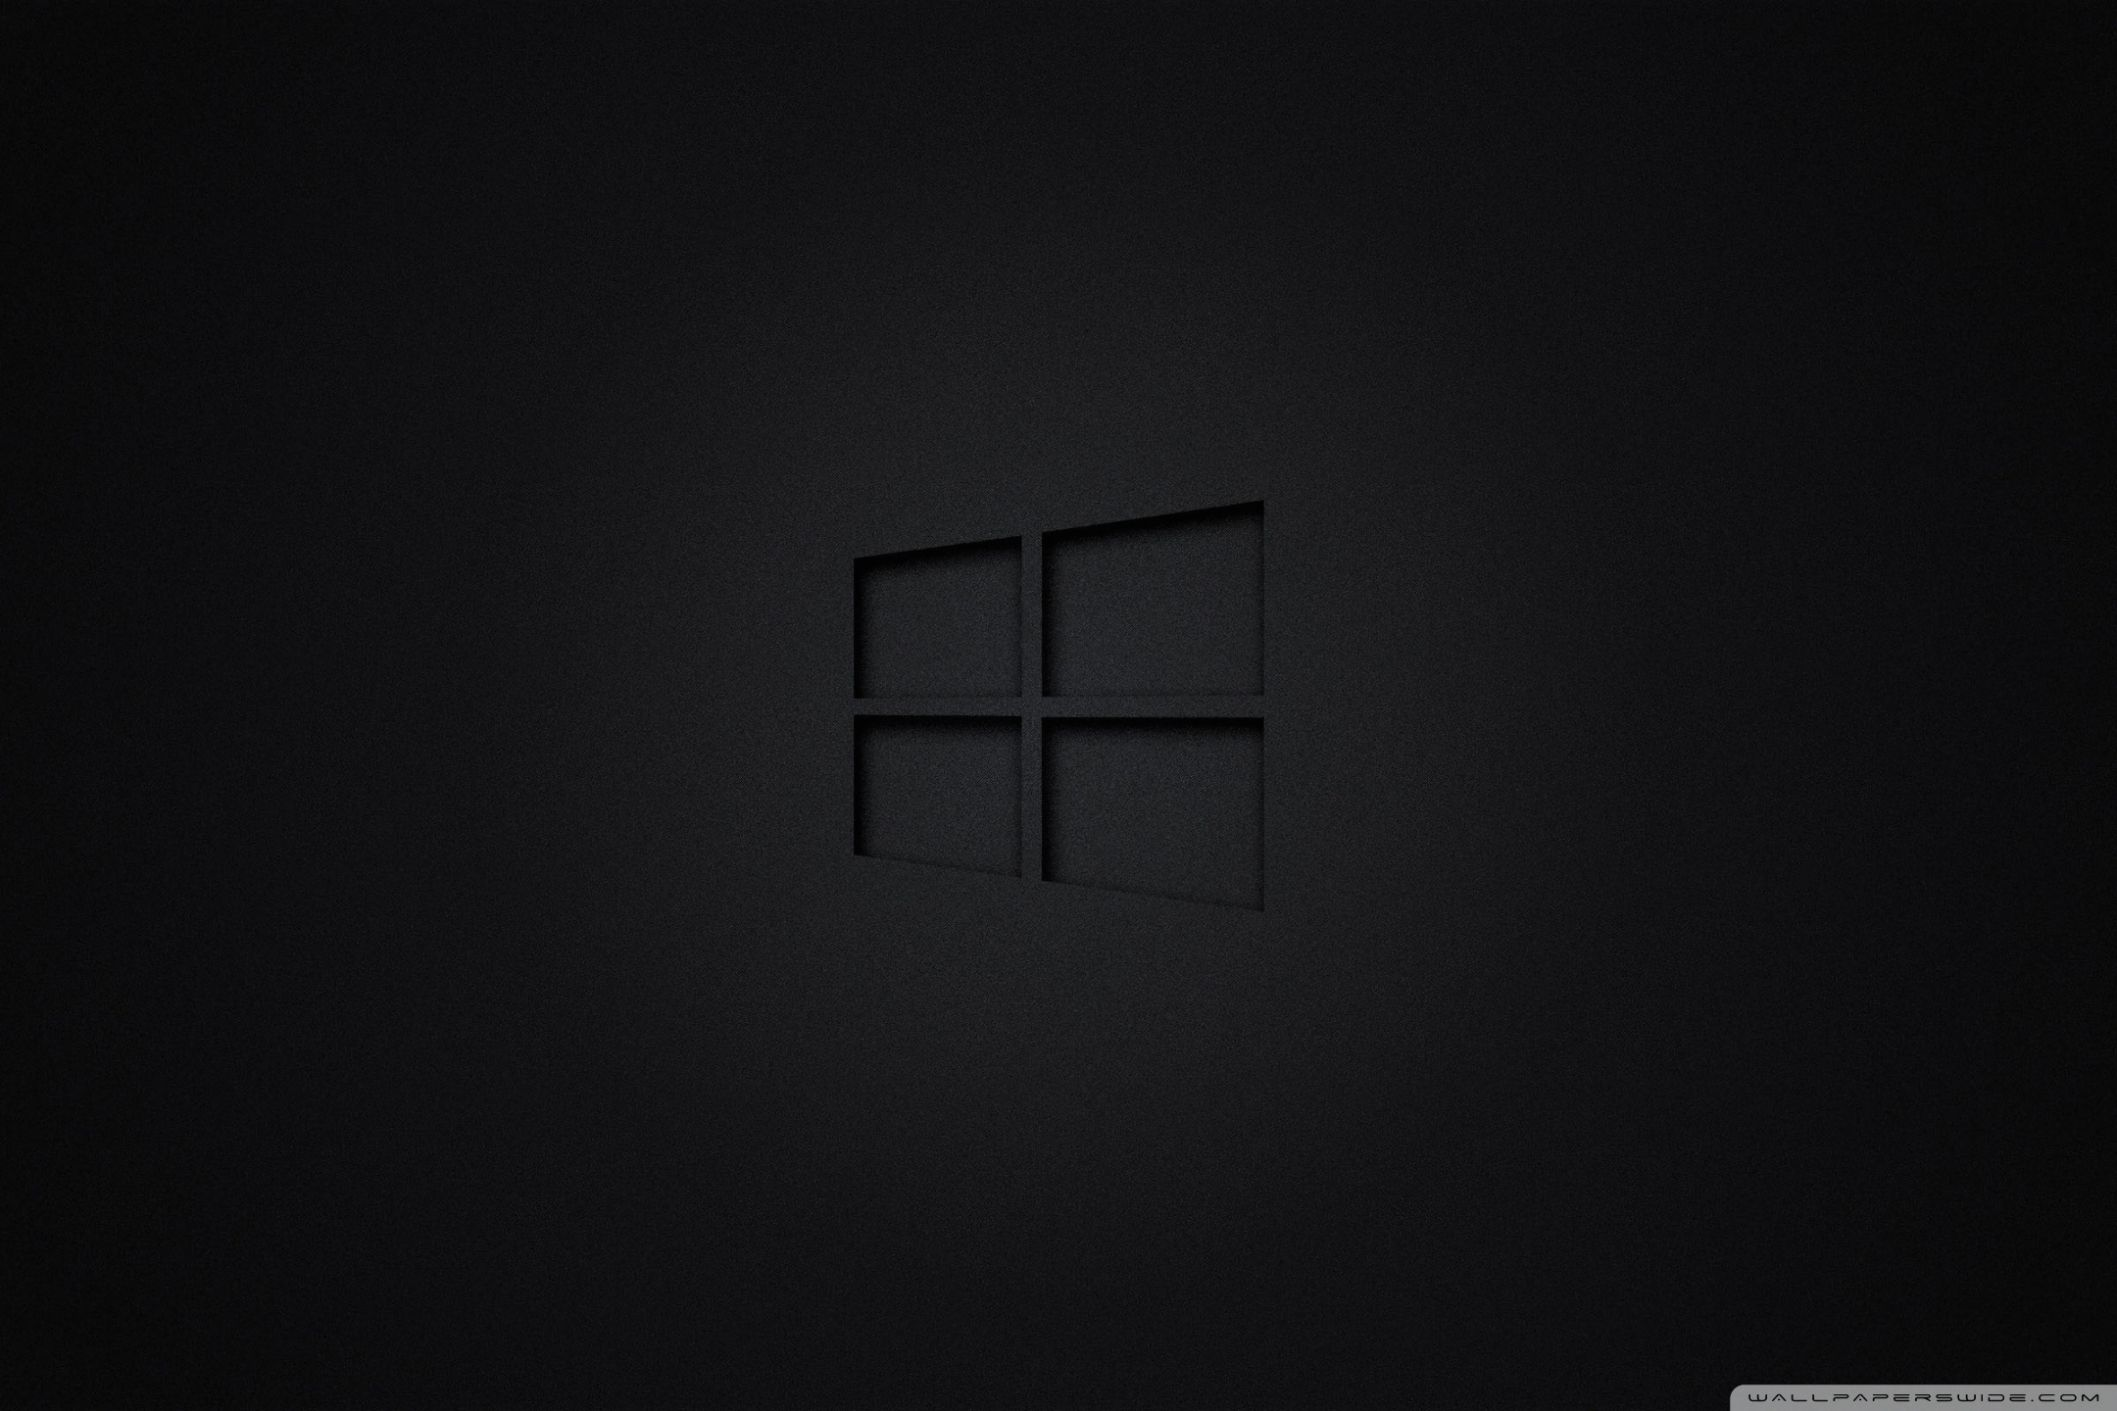 Wall Windows 10 Black 4k Hd Desktop Wallpaper For 4k Ultra Hd Tv Desktop Wallpaper Black Black Wallpaper Hd Wallpapers For Laptop